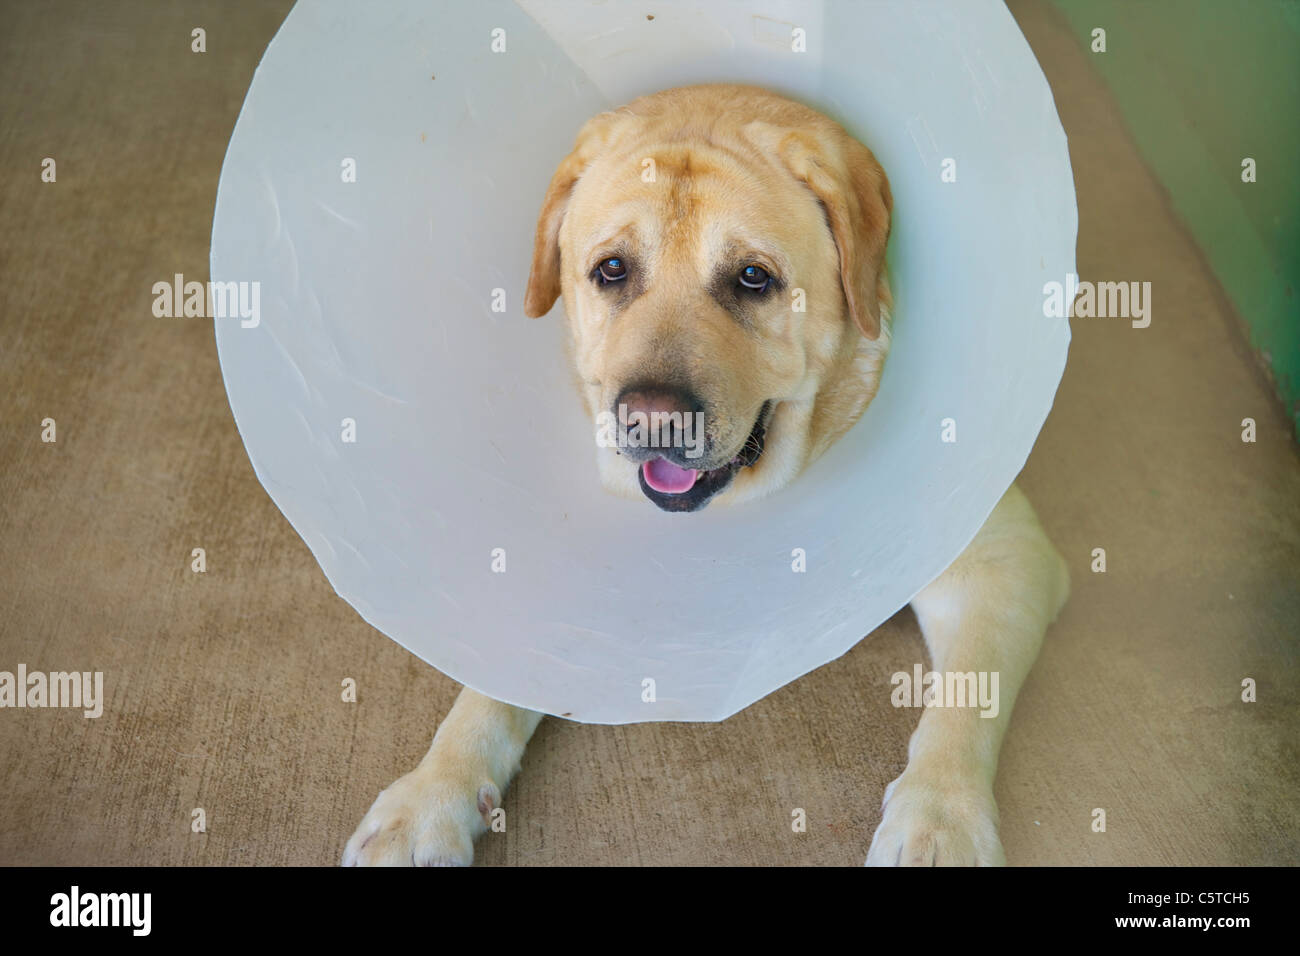 cone of shame stock photos cone of shame stock images alamy